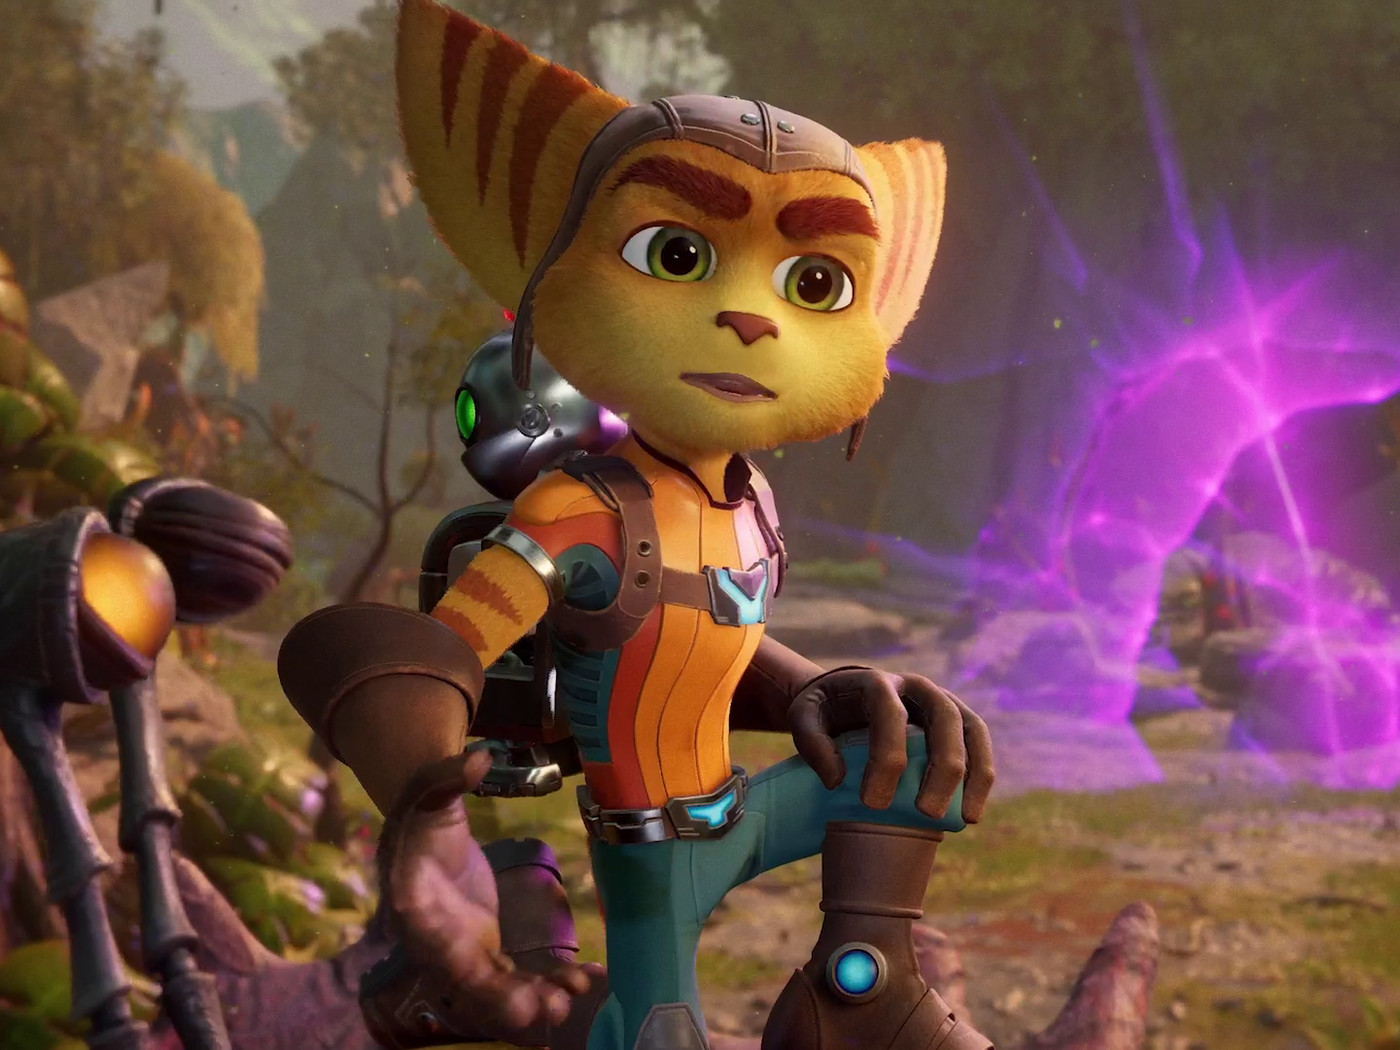 Ratchet Clank Ps5 Sequel Ratchet Clank Rift Apart Announced